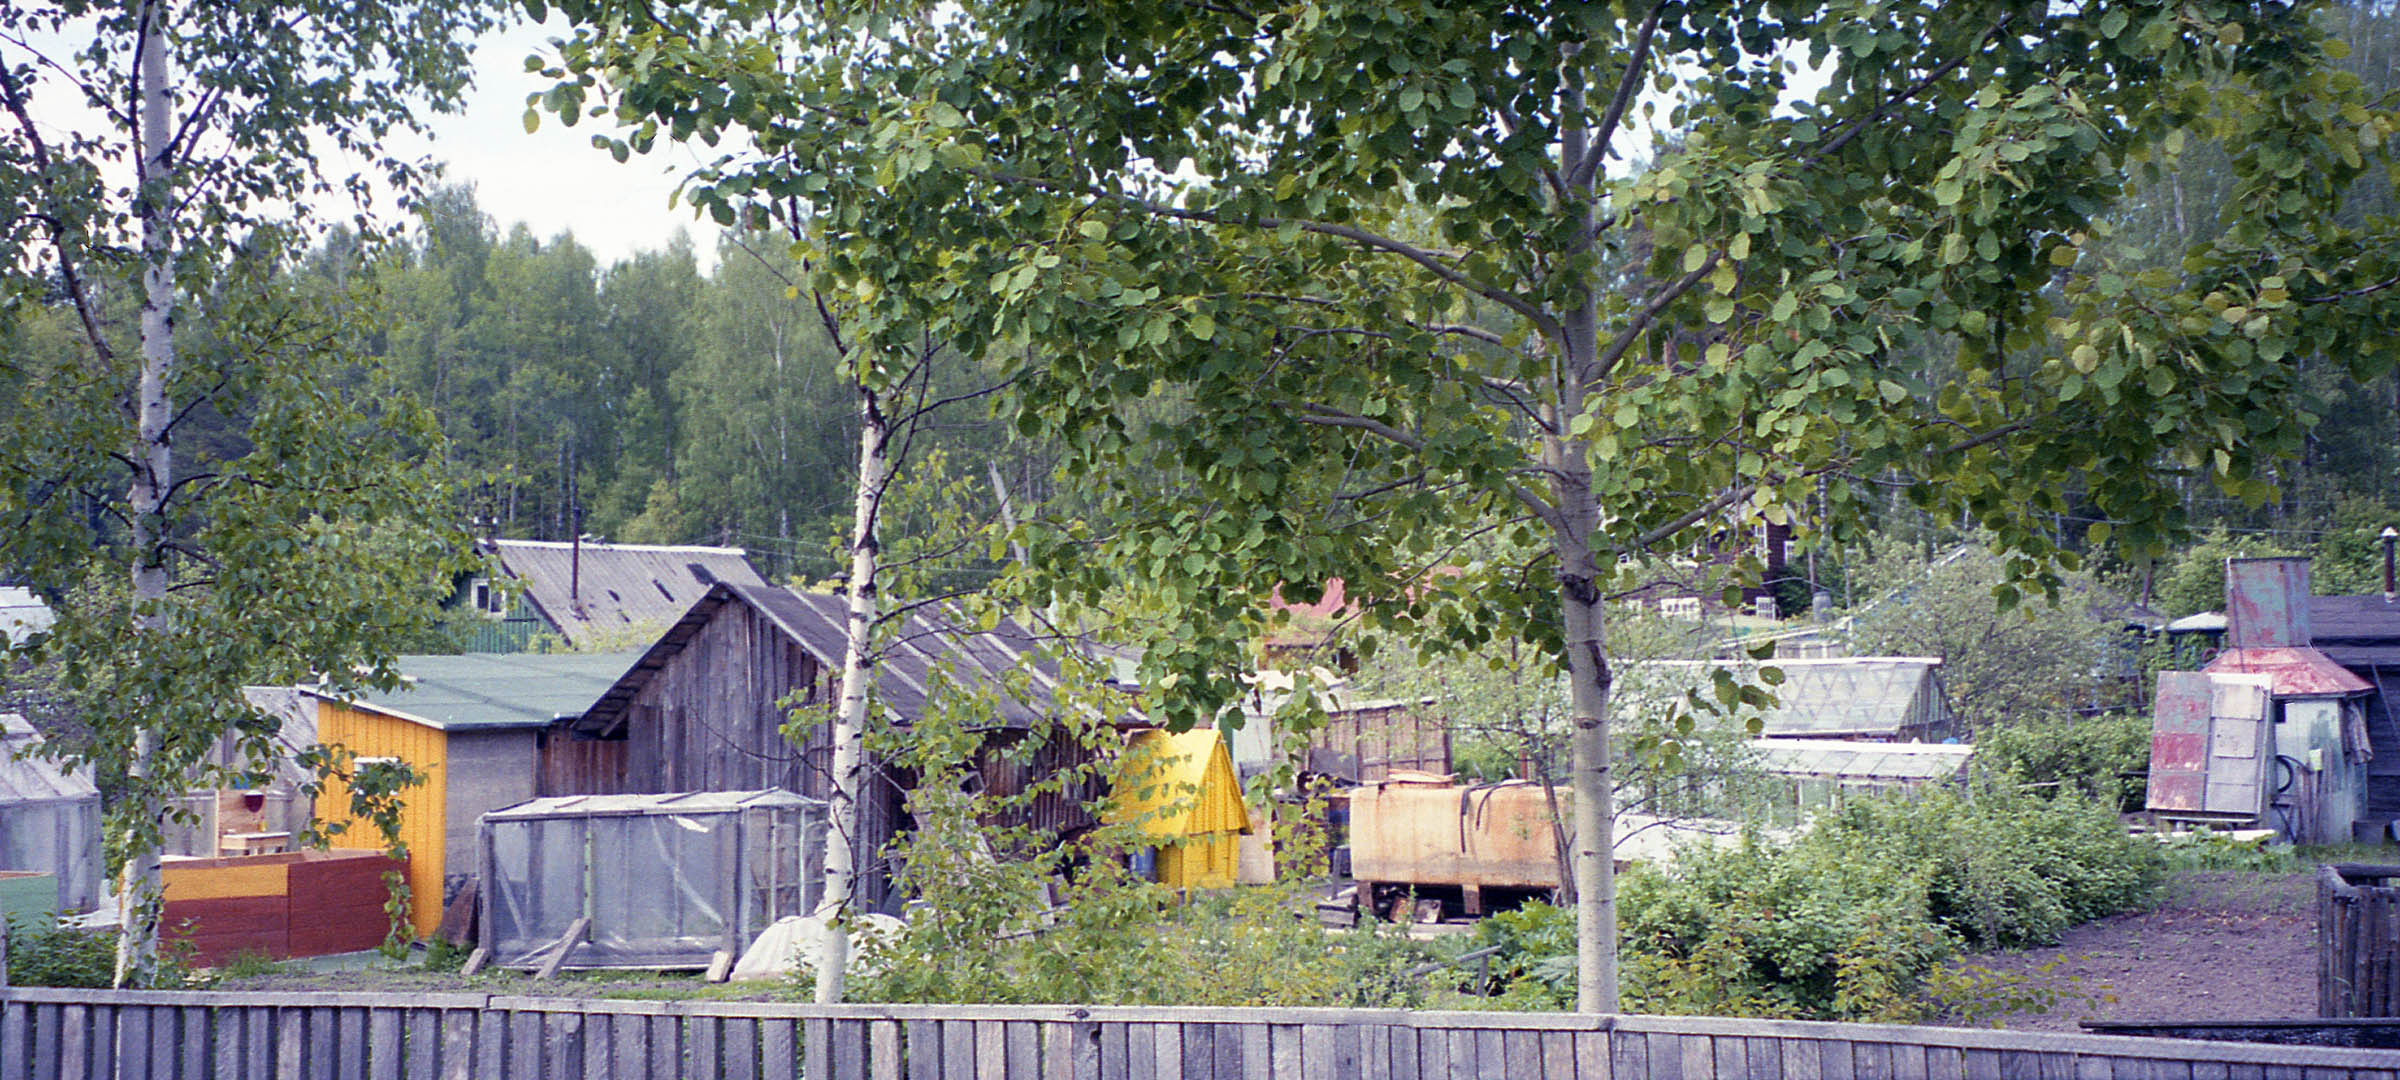 Dachas (country cottages) near Vyborg, Russia, 2003.